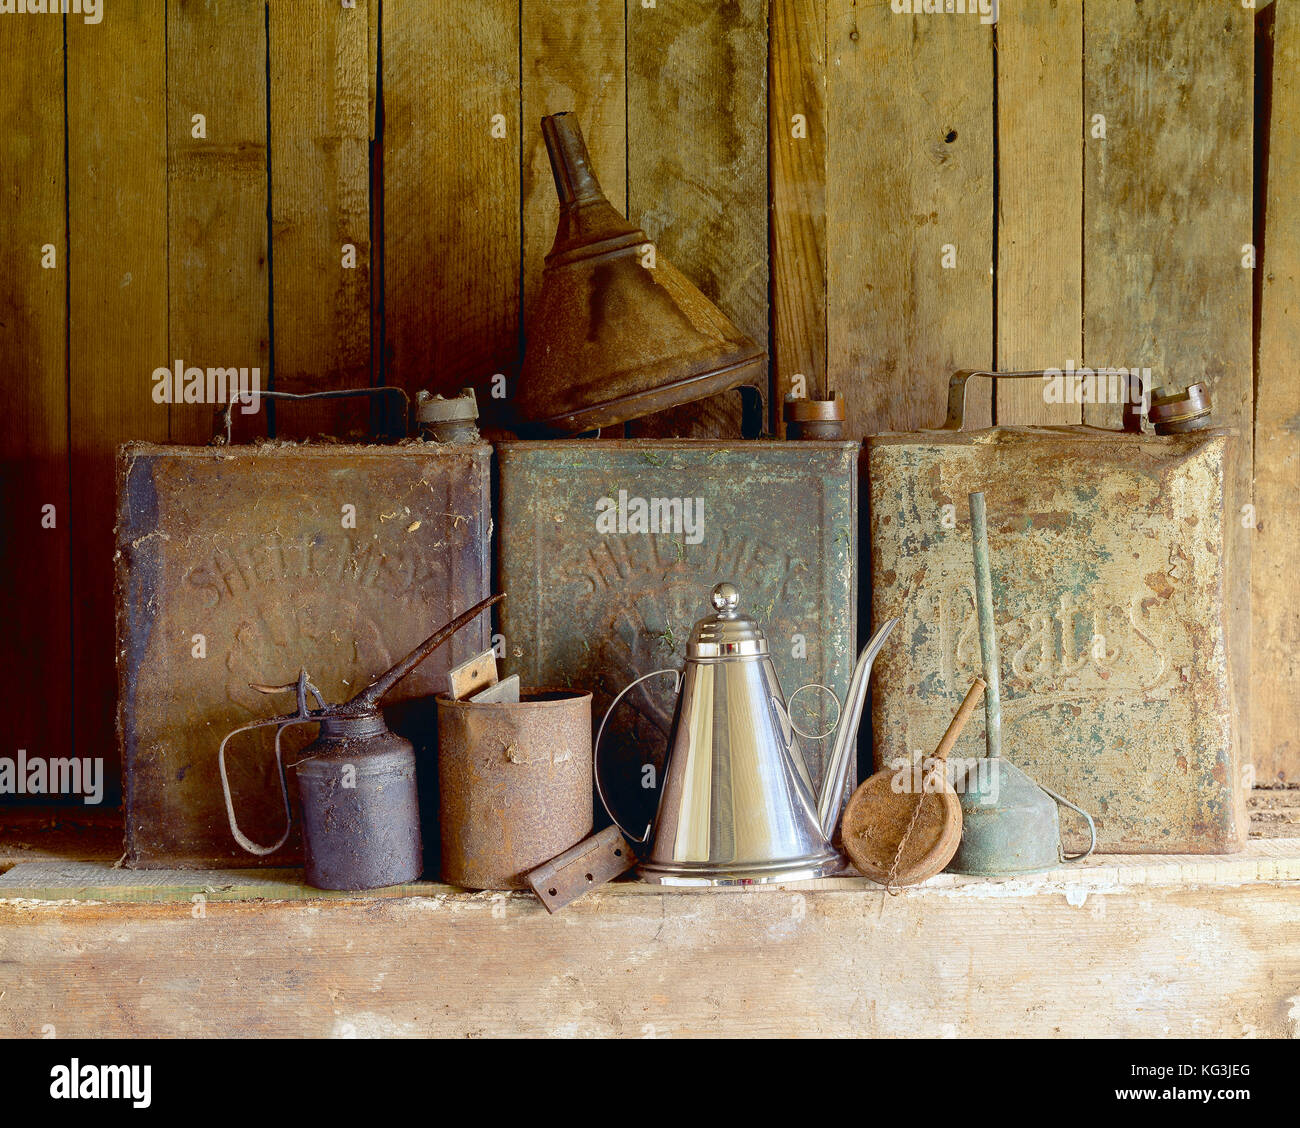 Still life. Antique petrol and oil cans on garage shelf. - Stock Image